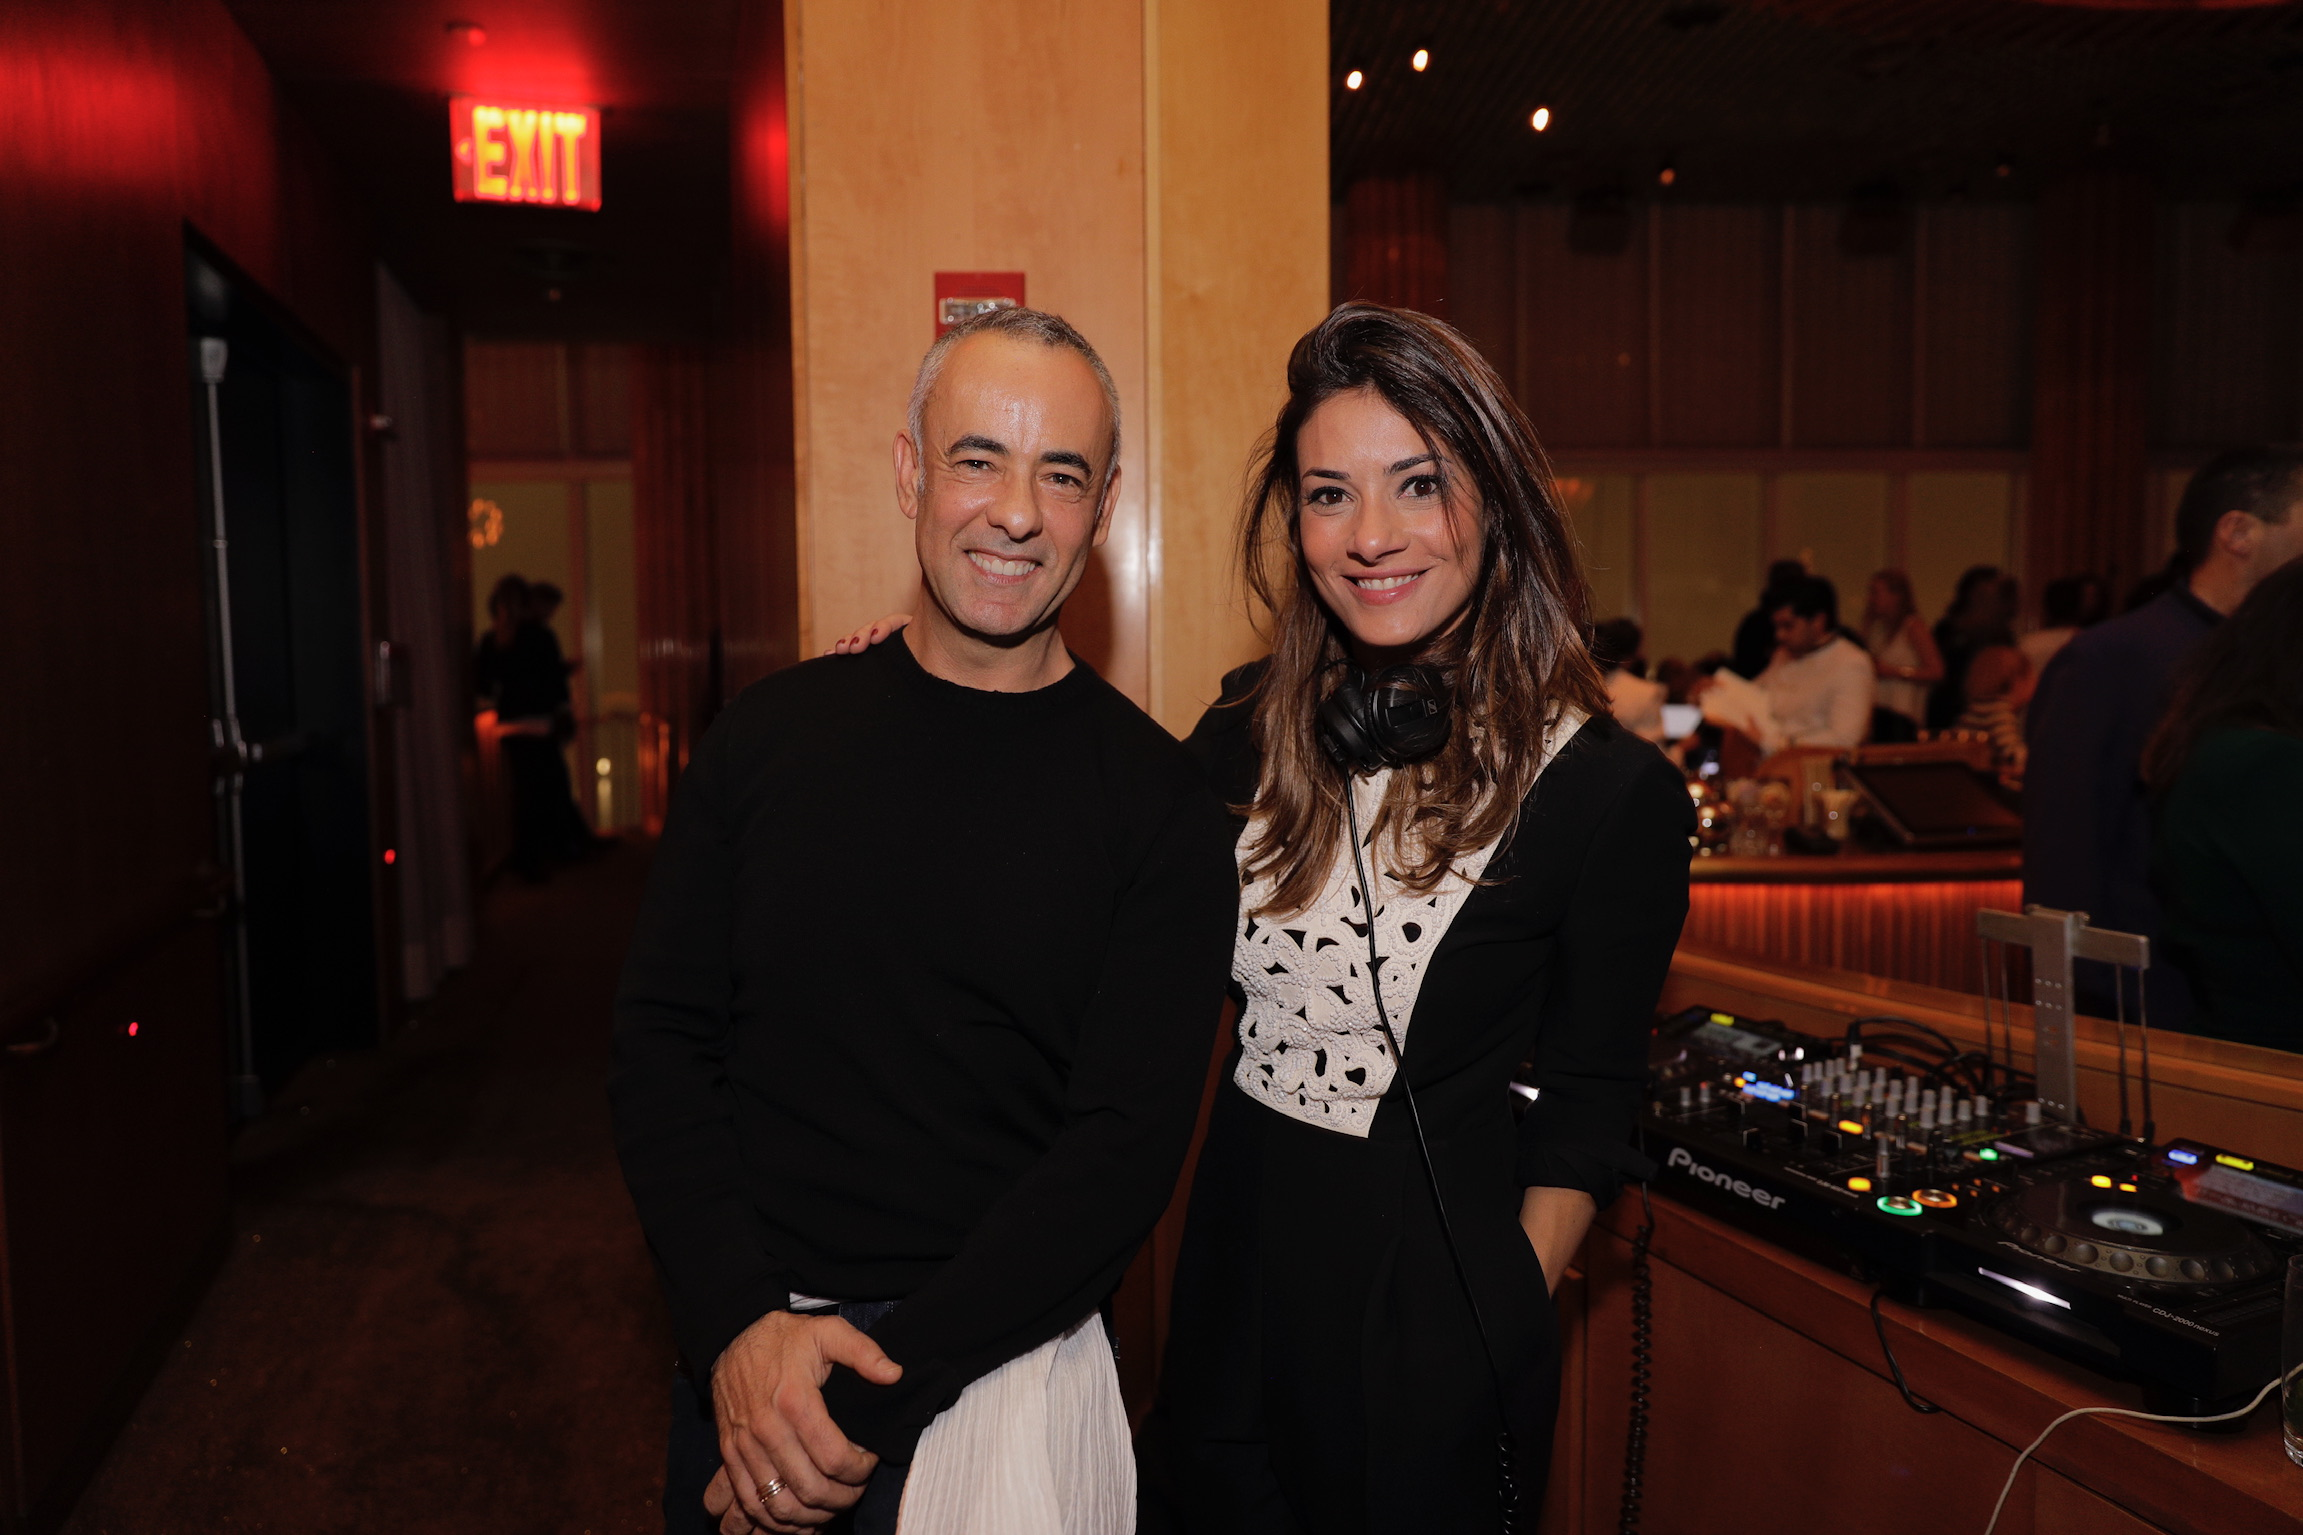 Francisco Costa, DJ Marina Diniz An Evening of Solidarity for Brumadinho BrazilFoundation AbraceMinasGerais Charity New York